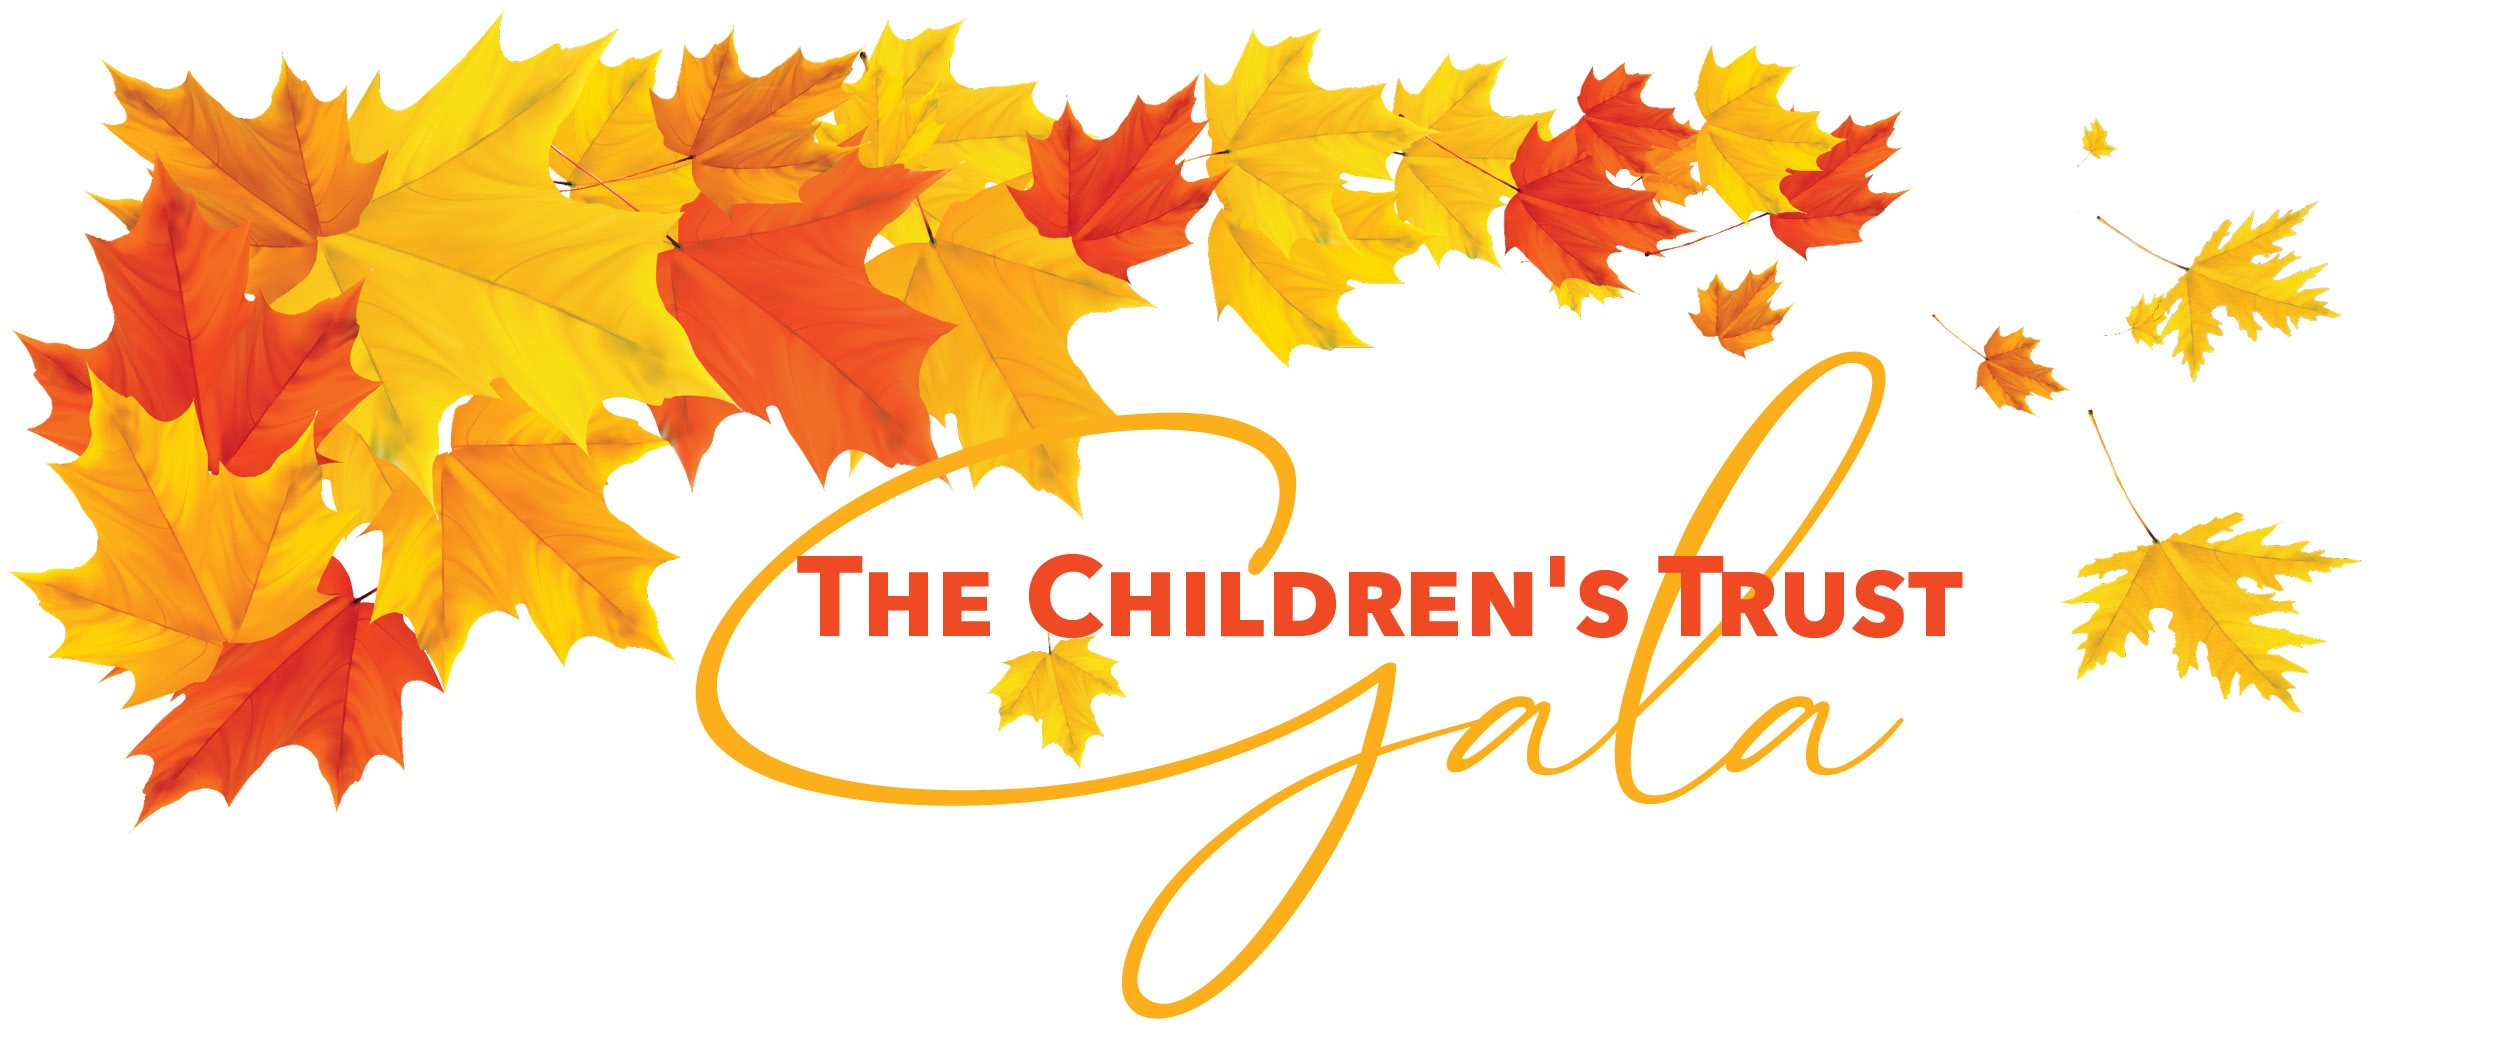 The Children's Trust Gala